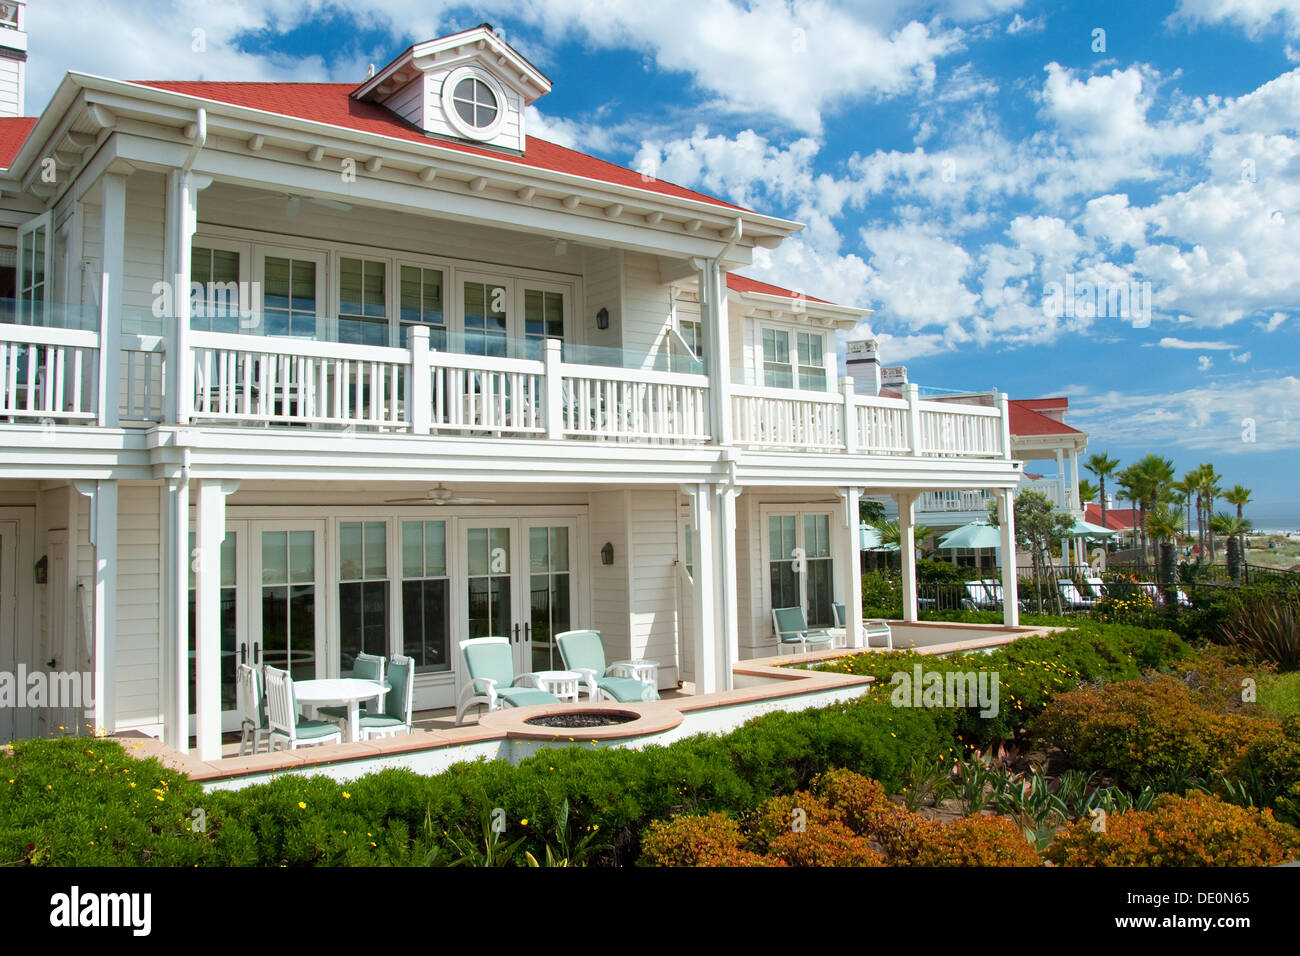 Luxury american dream beach summer house with beautiful blue sky in background. - Stock Image